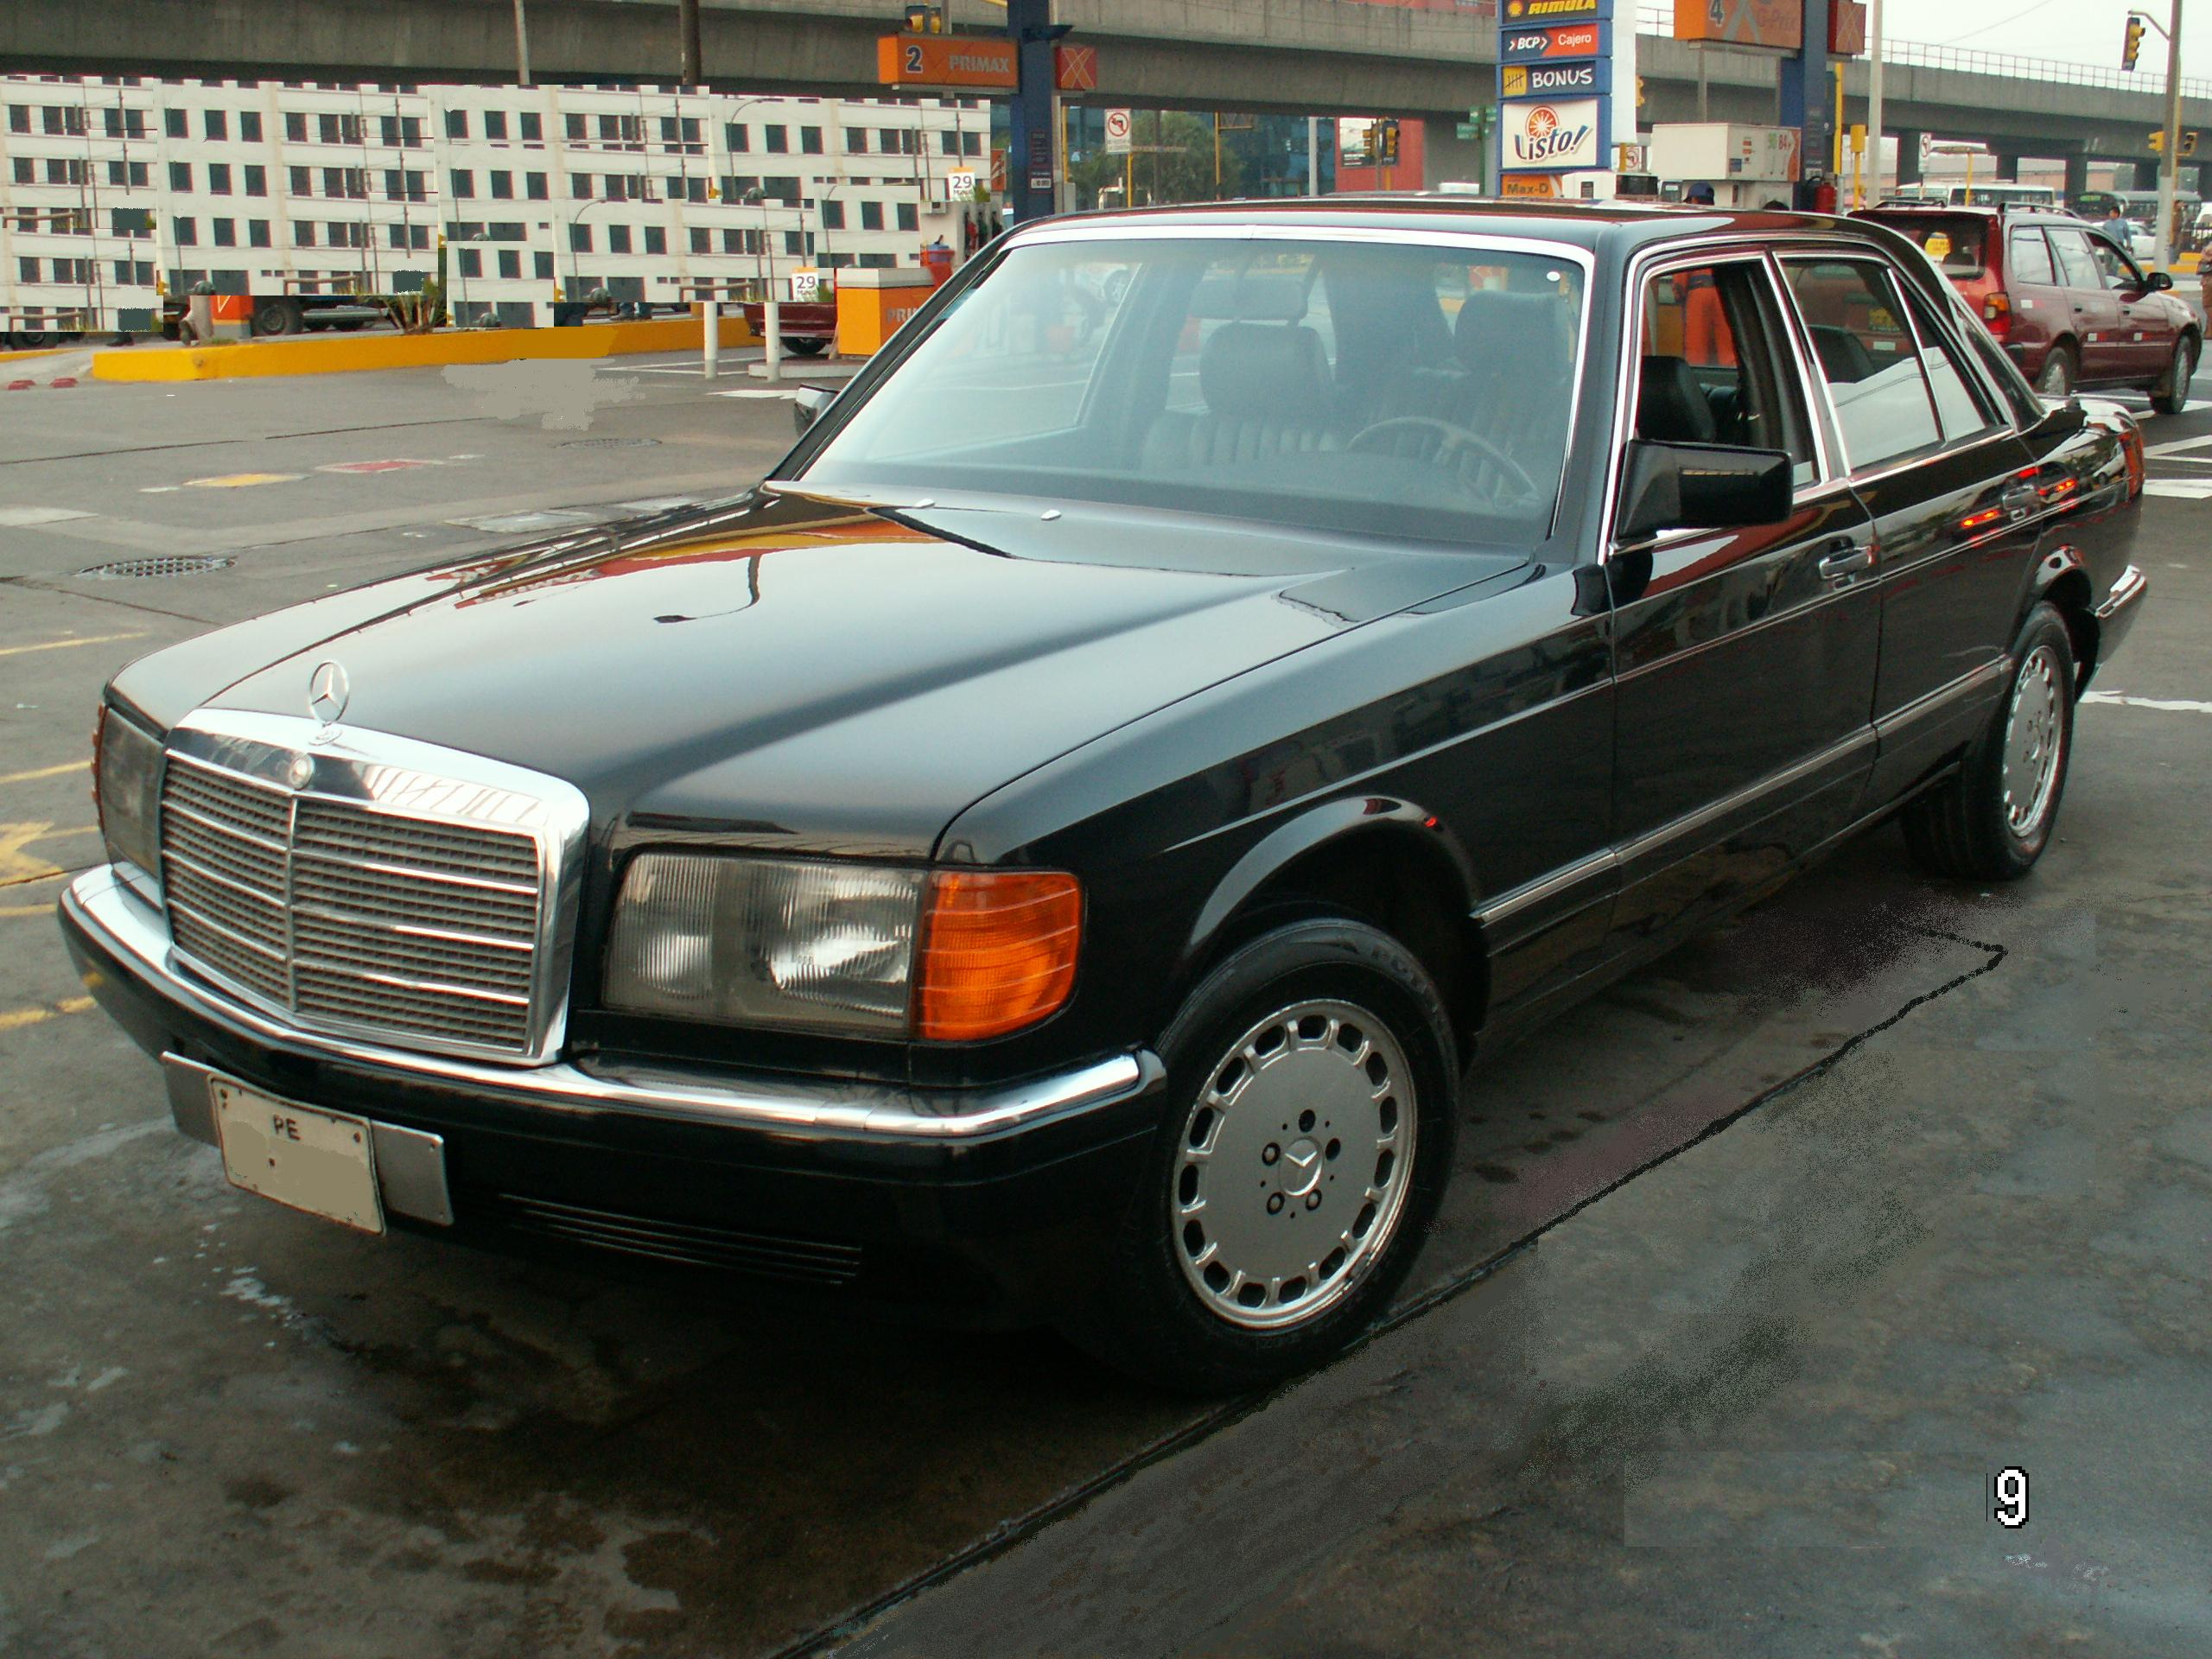 Mercedes benz 300 se technical details history photos on for Mercedes benz 300 s